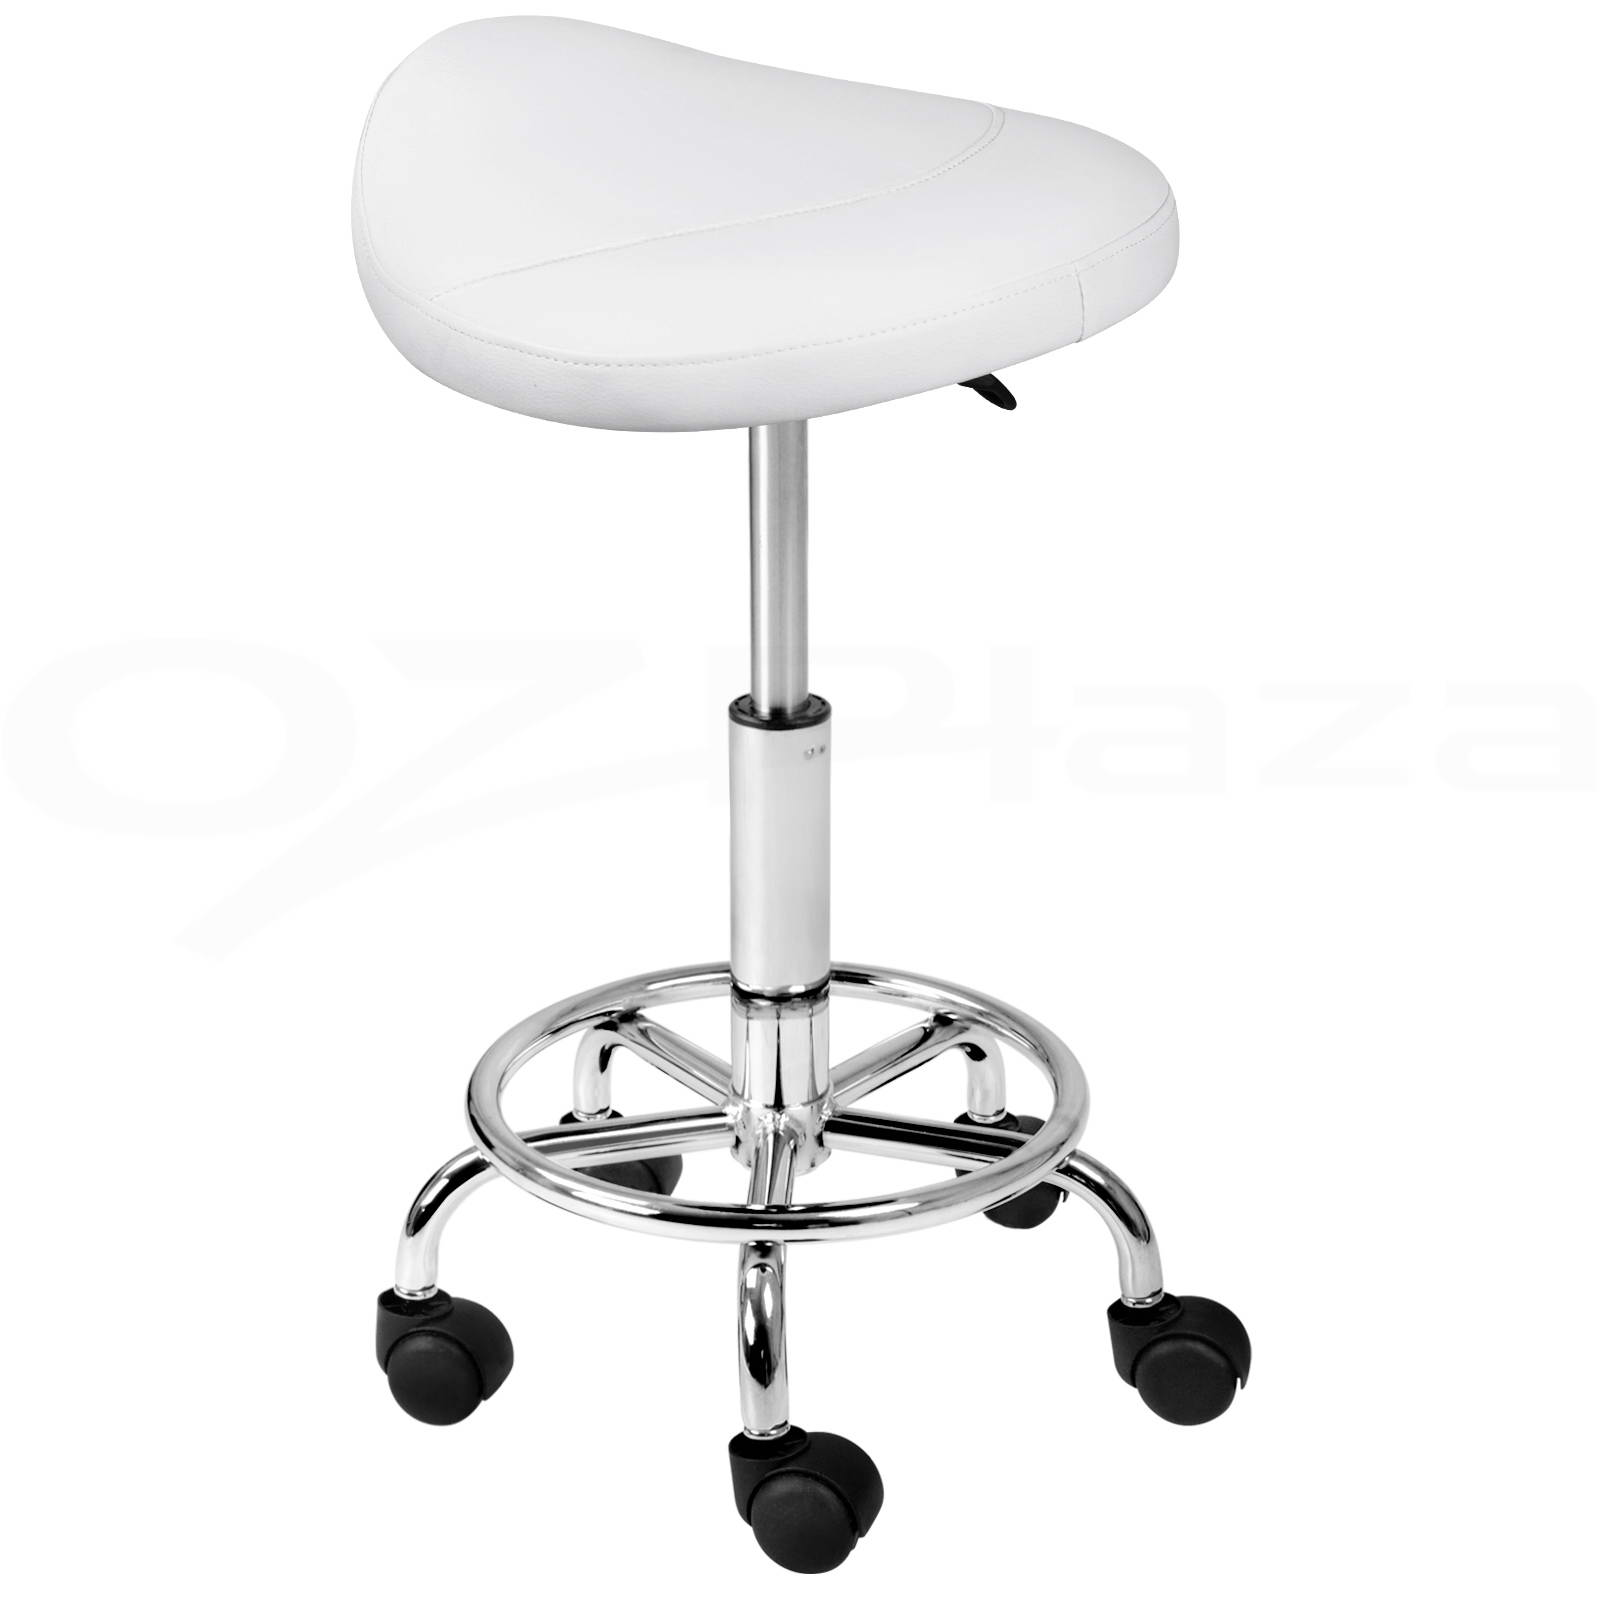 white hair styling chairs chapel with kneelers saddle salon stool pu swivel barber dress chair